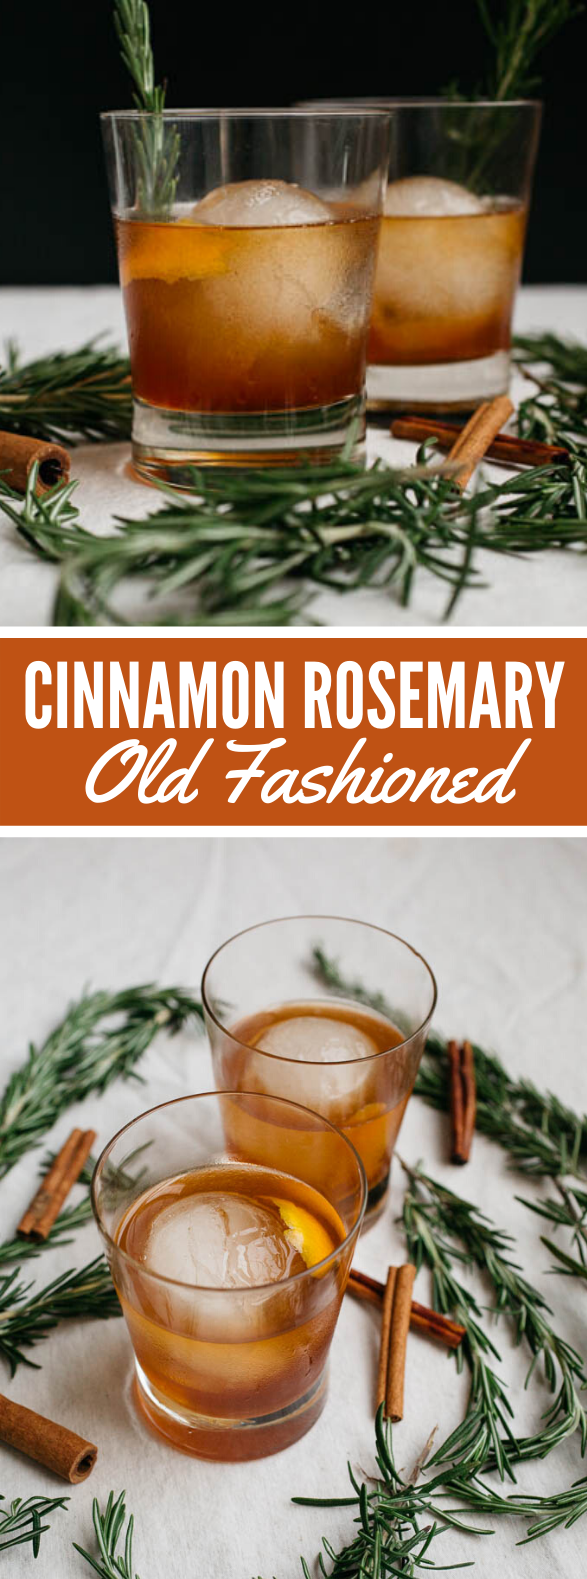 CINNAMON ROSEMARY OLD FASHIONED #drinks #cocktails